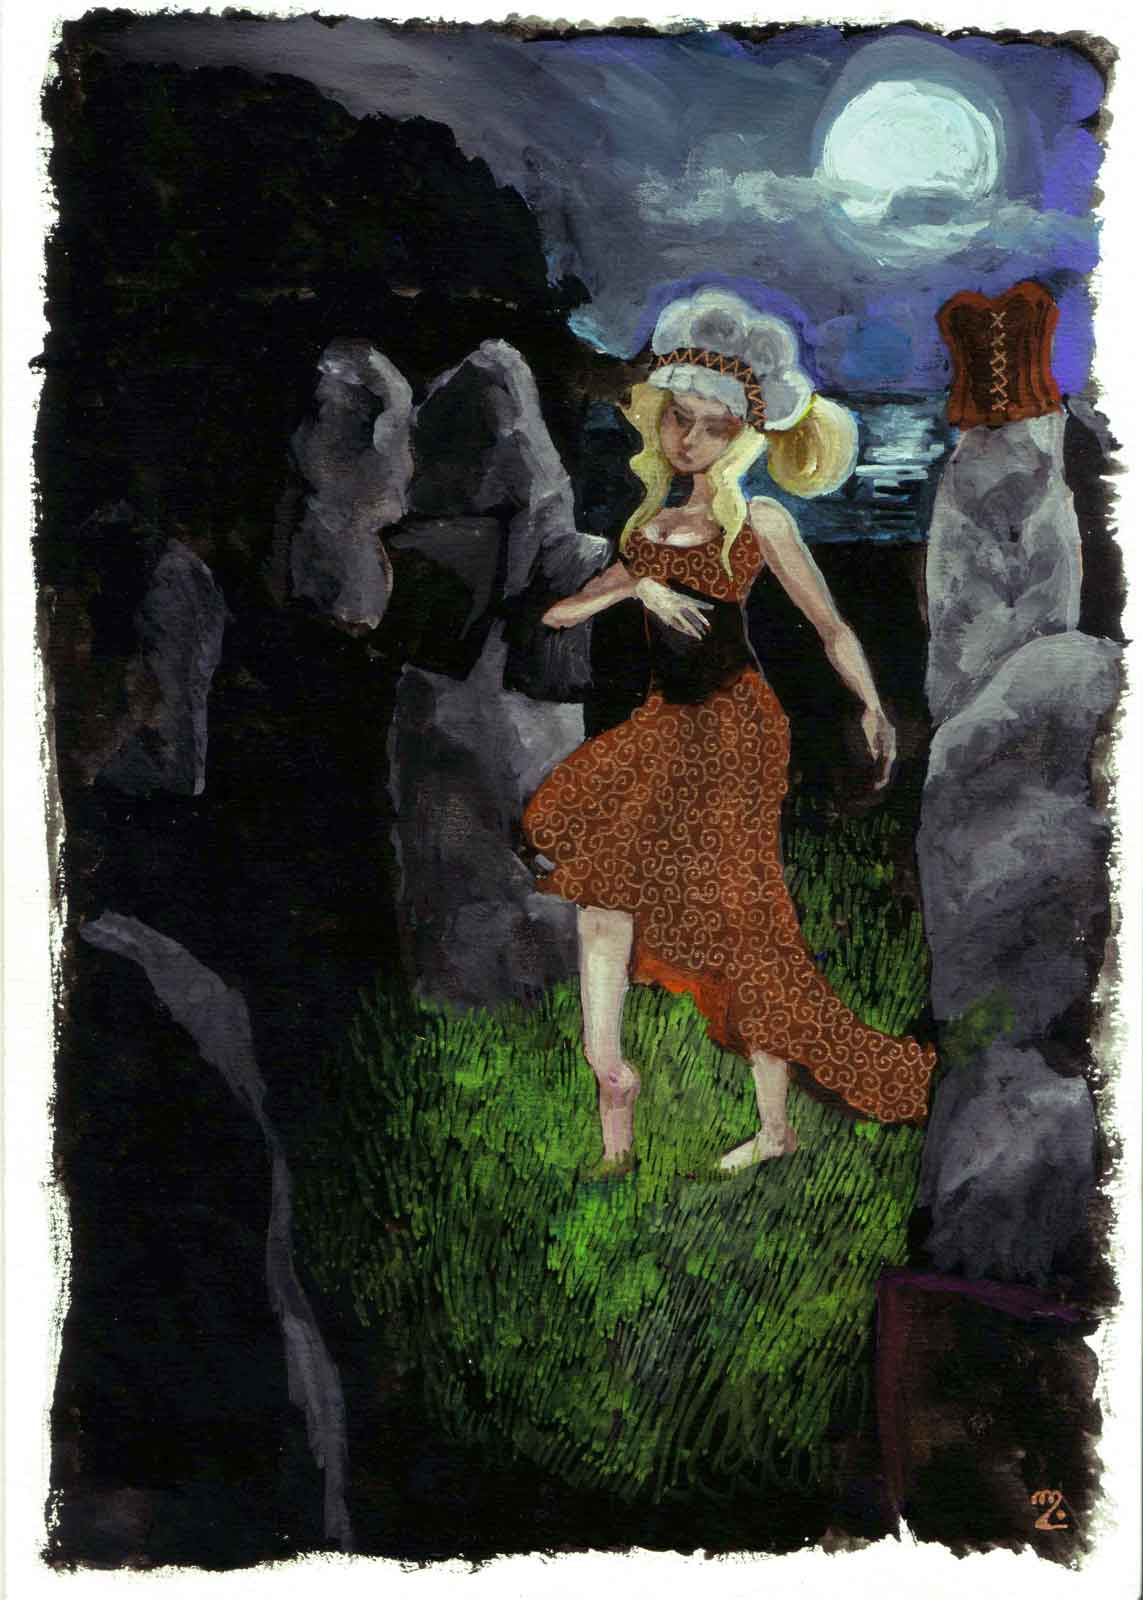 A girl dancing amongst standing stones at night under the moonlight.